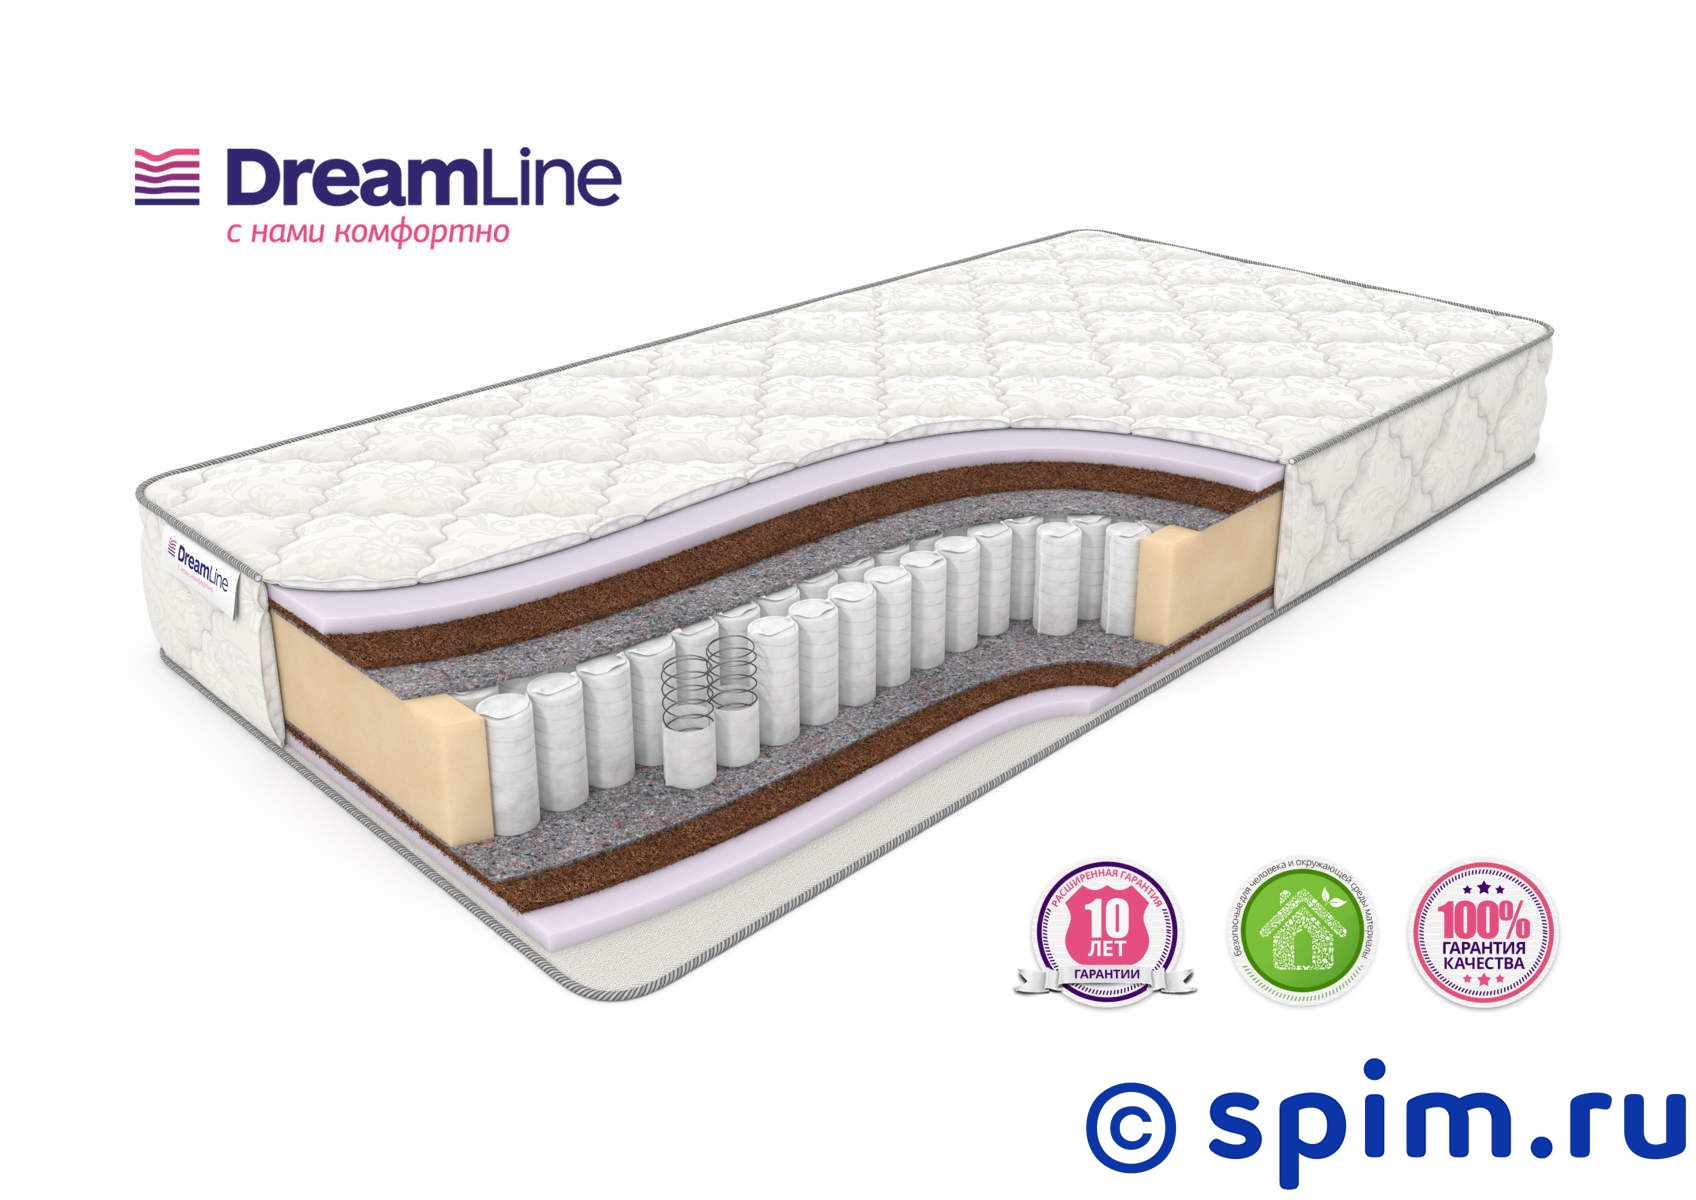 Матрас DreamLine Eco Foam Hard Tfk 90х200 см